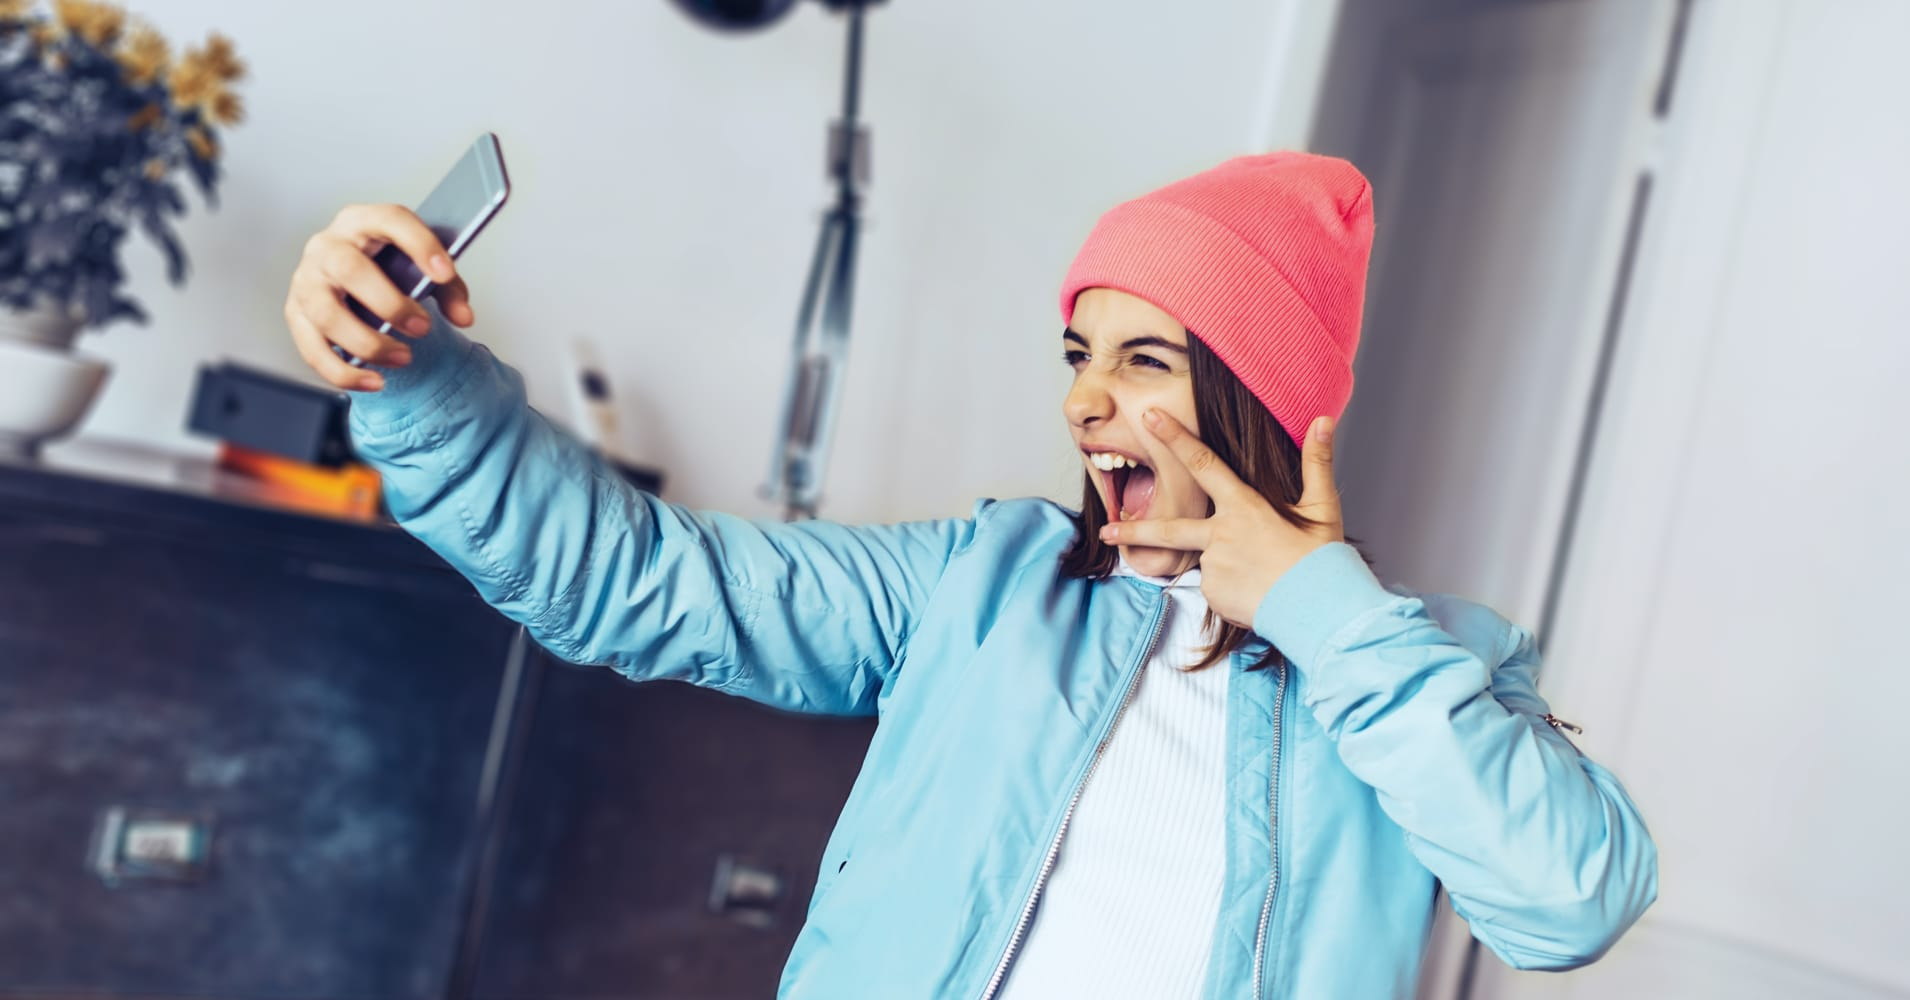 Instagram is the best way to market to teens, says Piper Jaffray survey